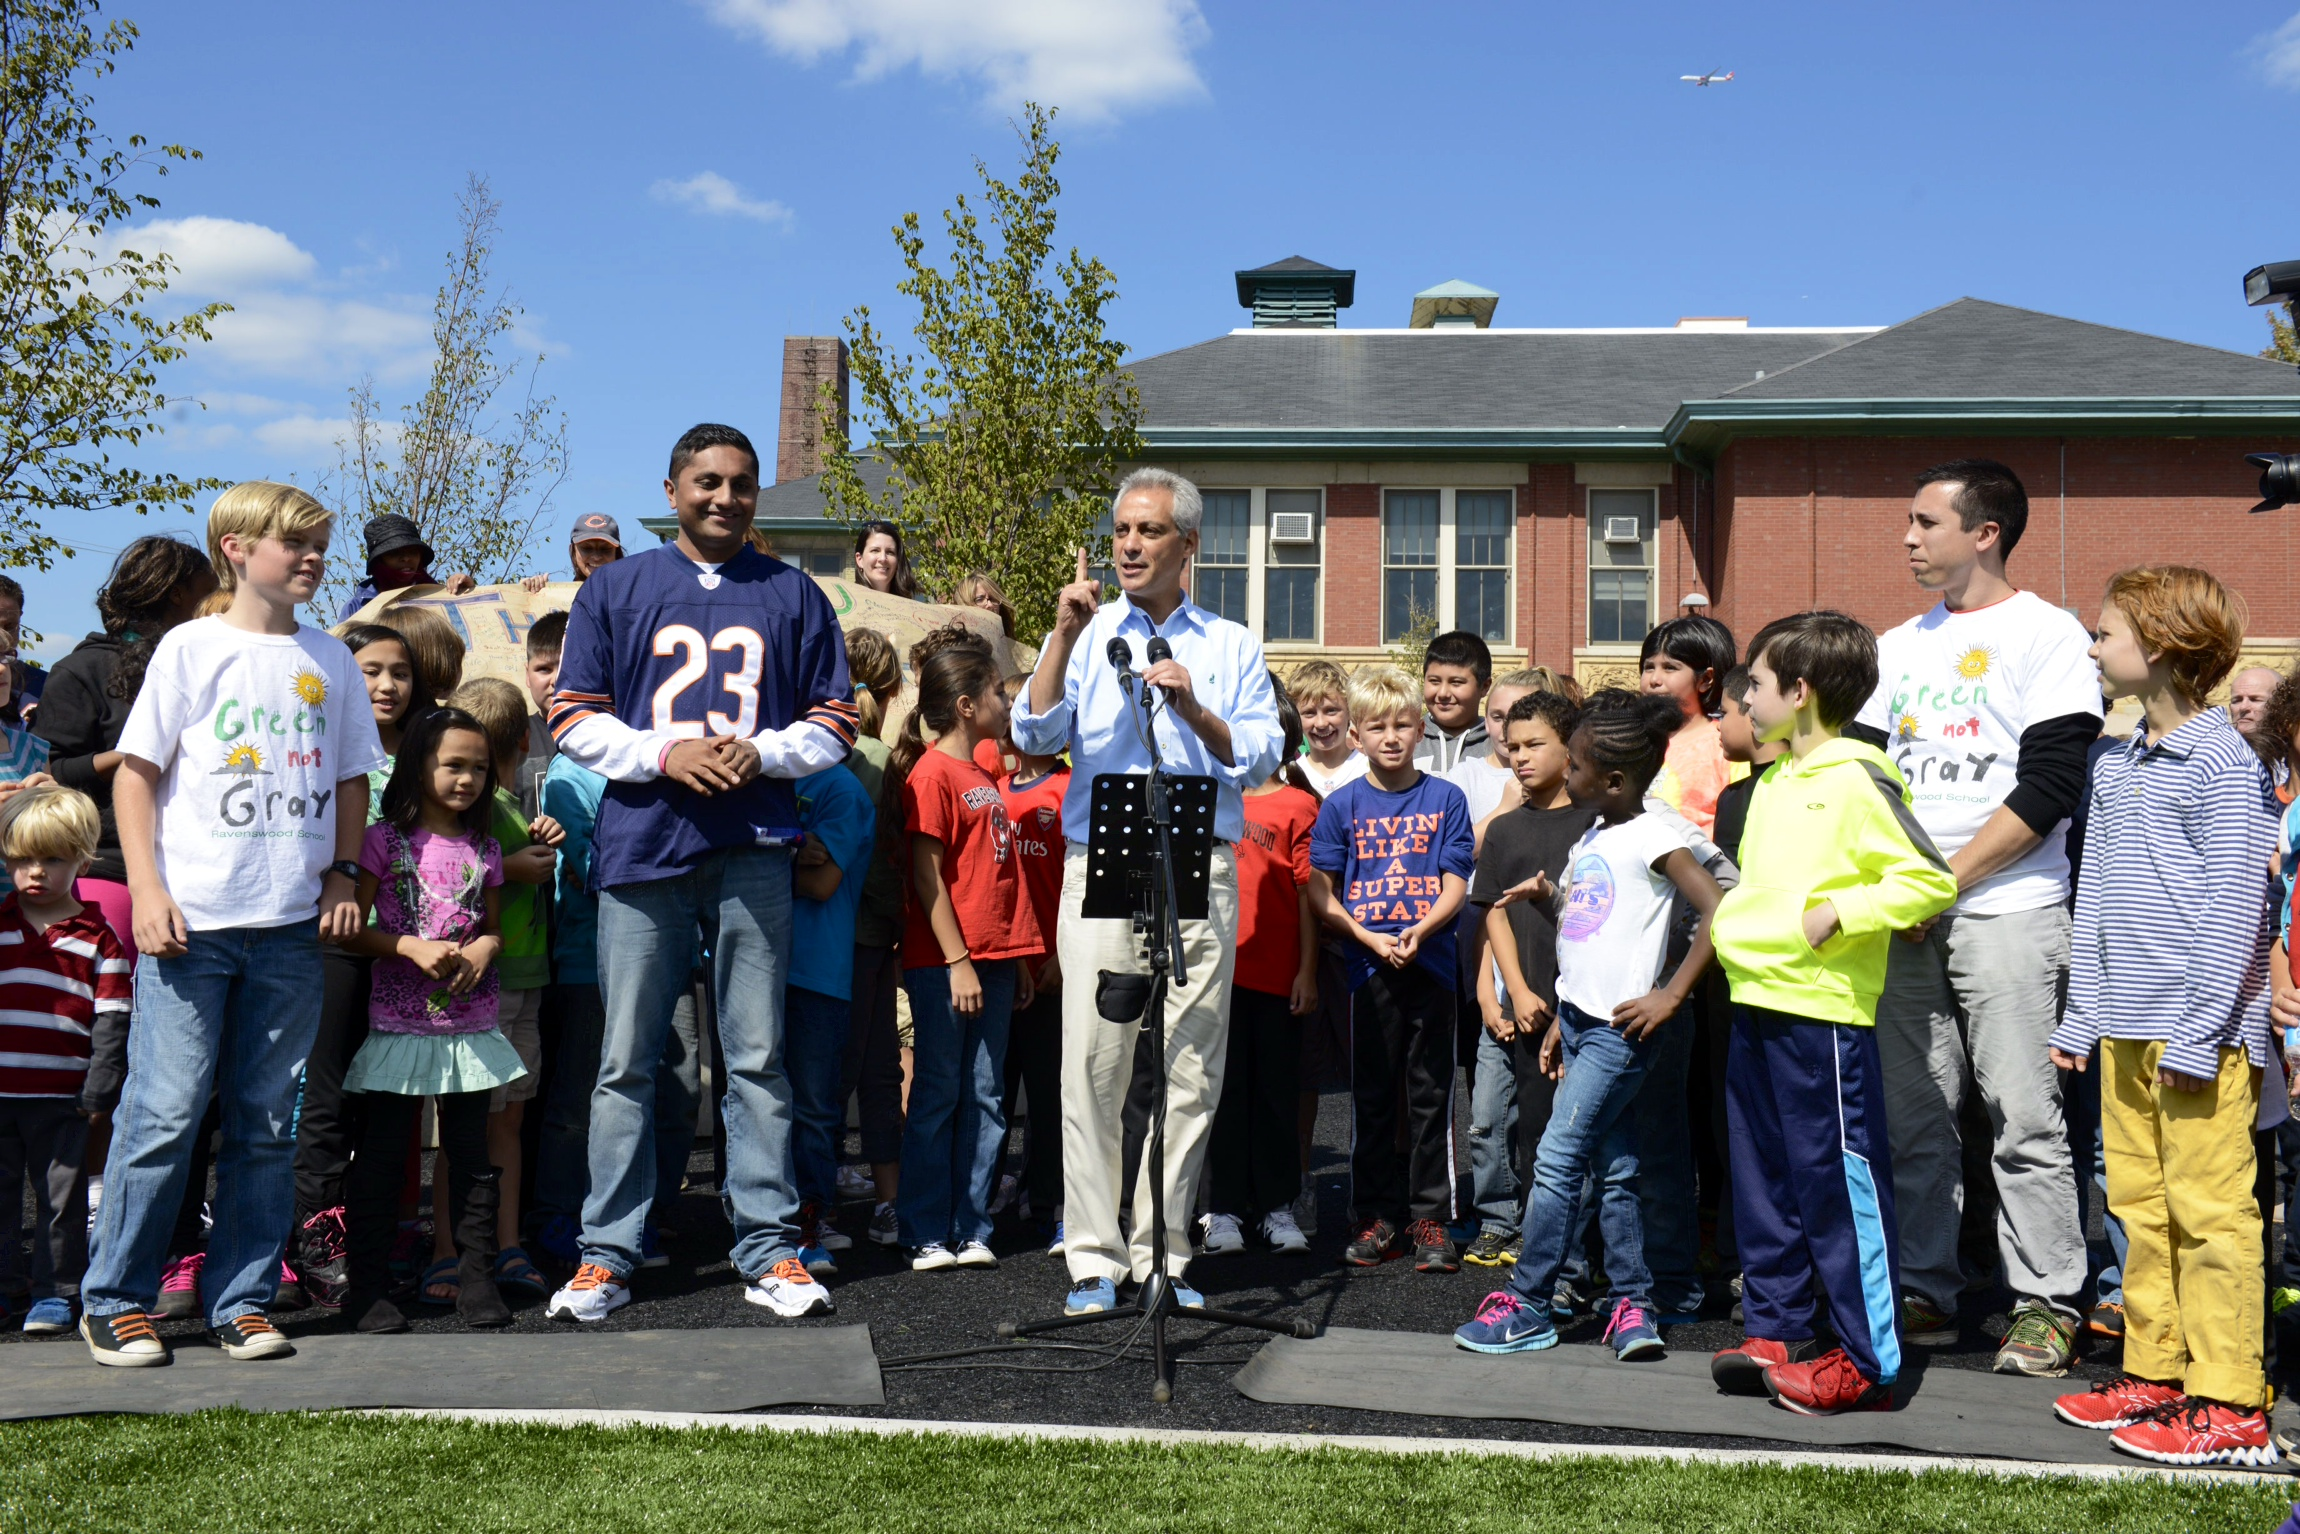 Mayor Emanuel Cuts Ribbon At Ravenswood Elementary School Playground